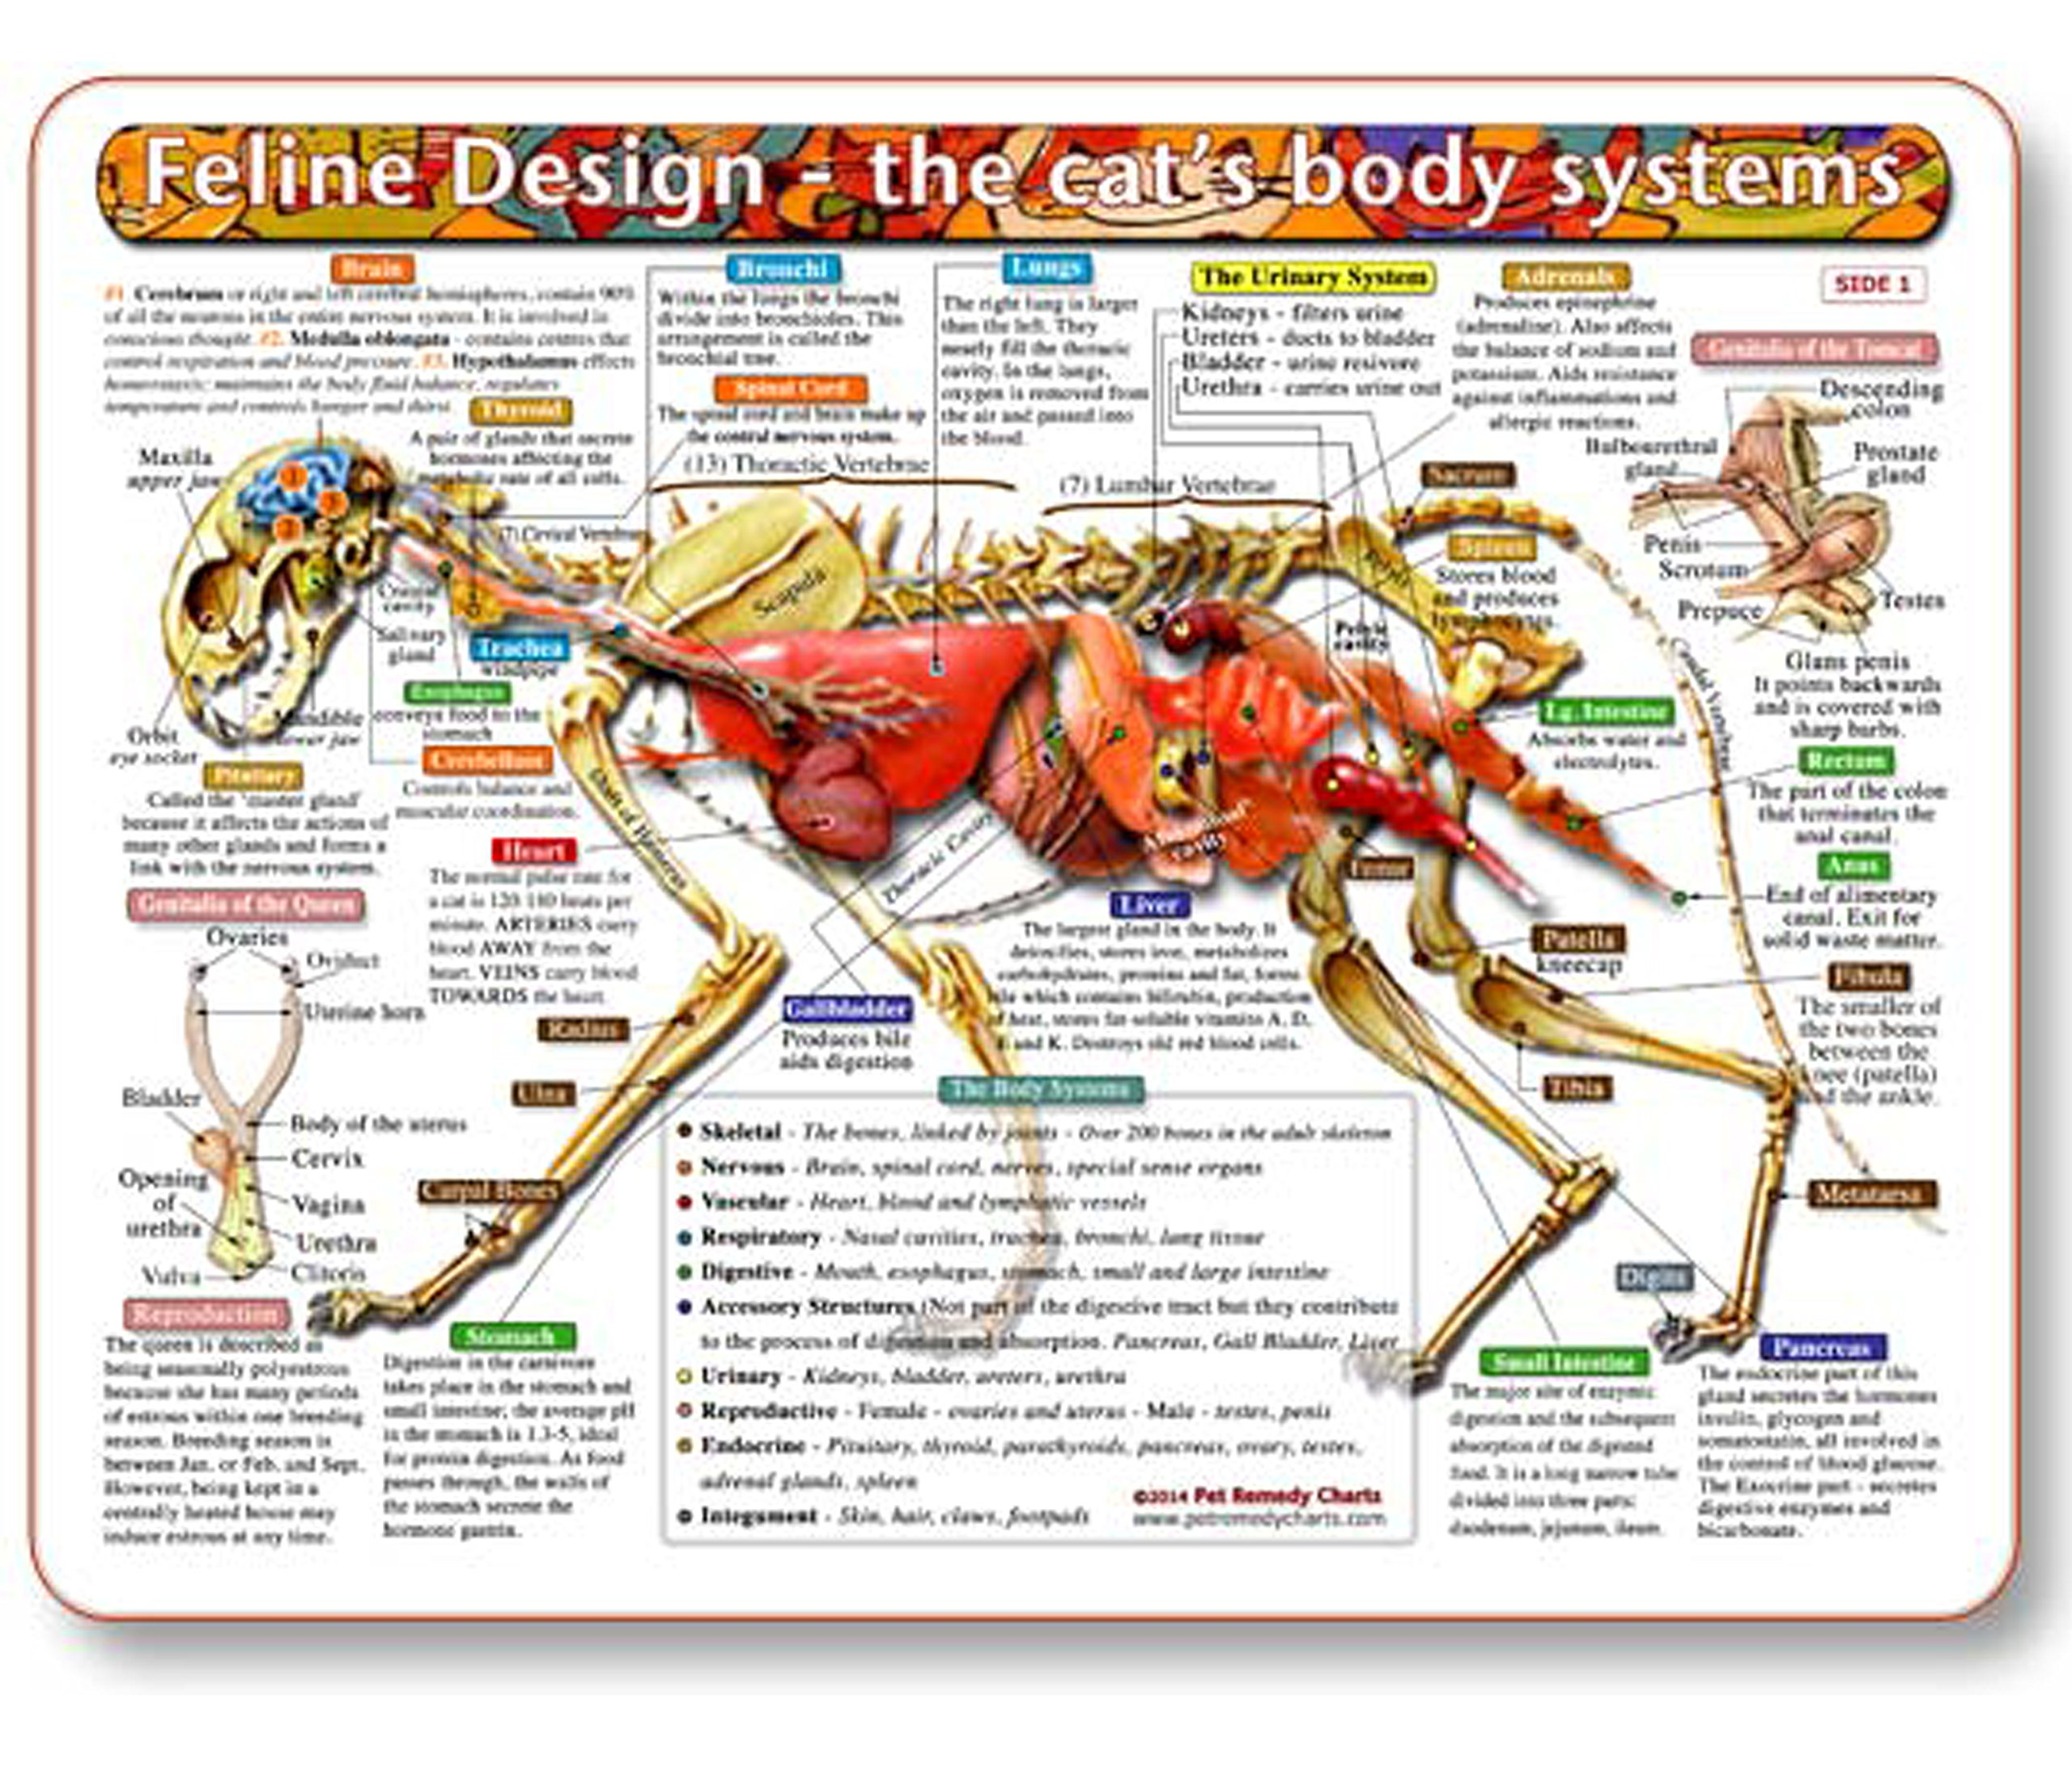 The Cat's Body Systems - A Double-Sided, UV Protected, Laminated Cat Anatomy Chart: A Learning and Teaching Chart For Veterinary Science Professionals, Veterninary Technicians, Cat Lovers and Breeders